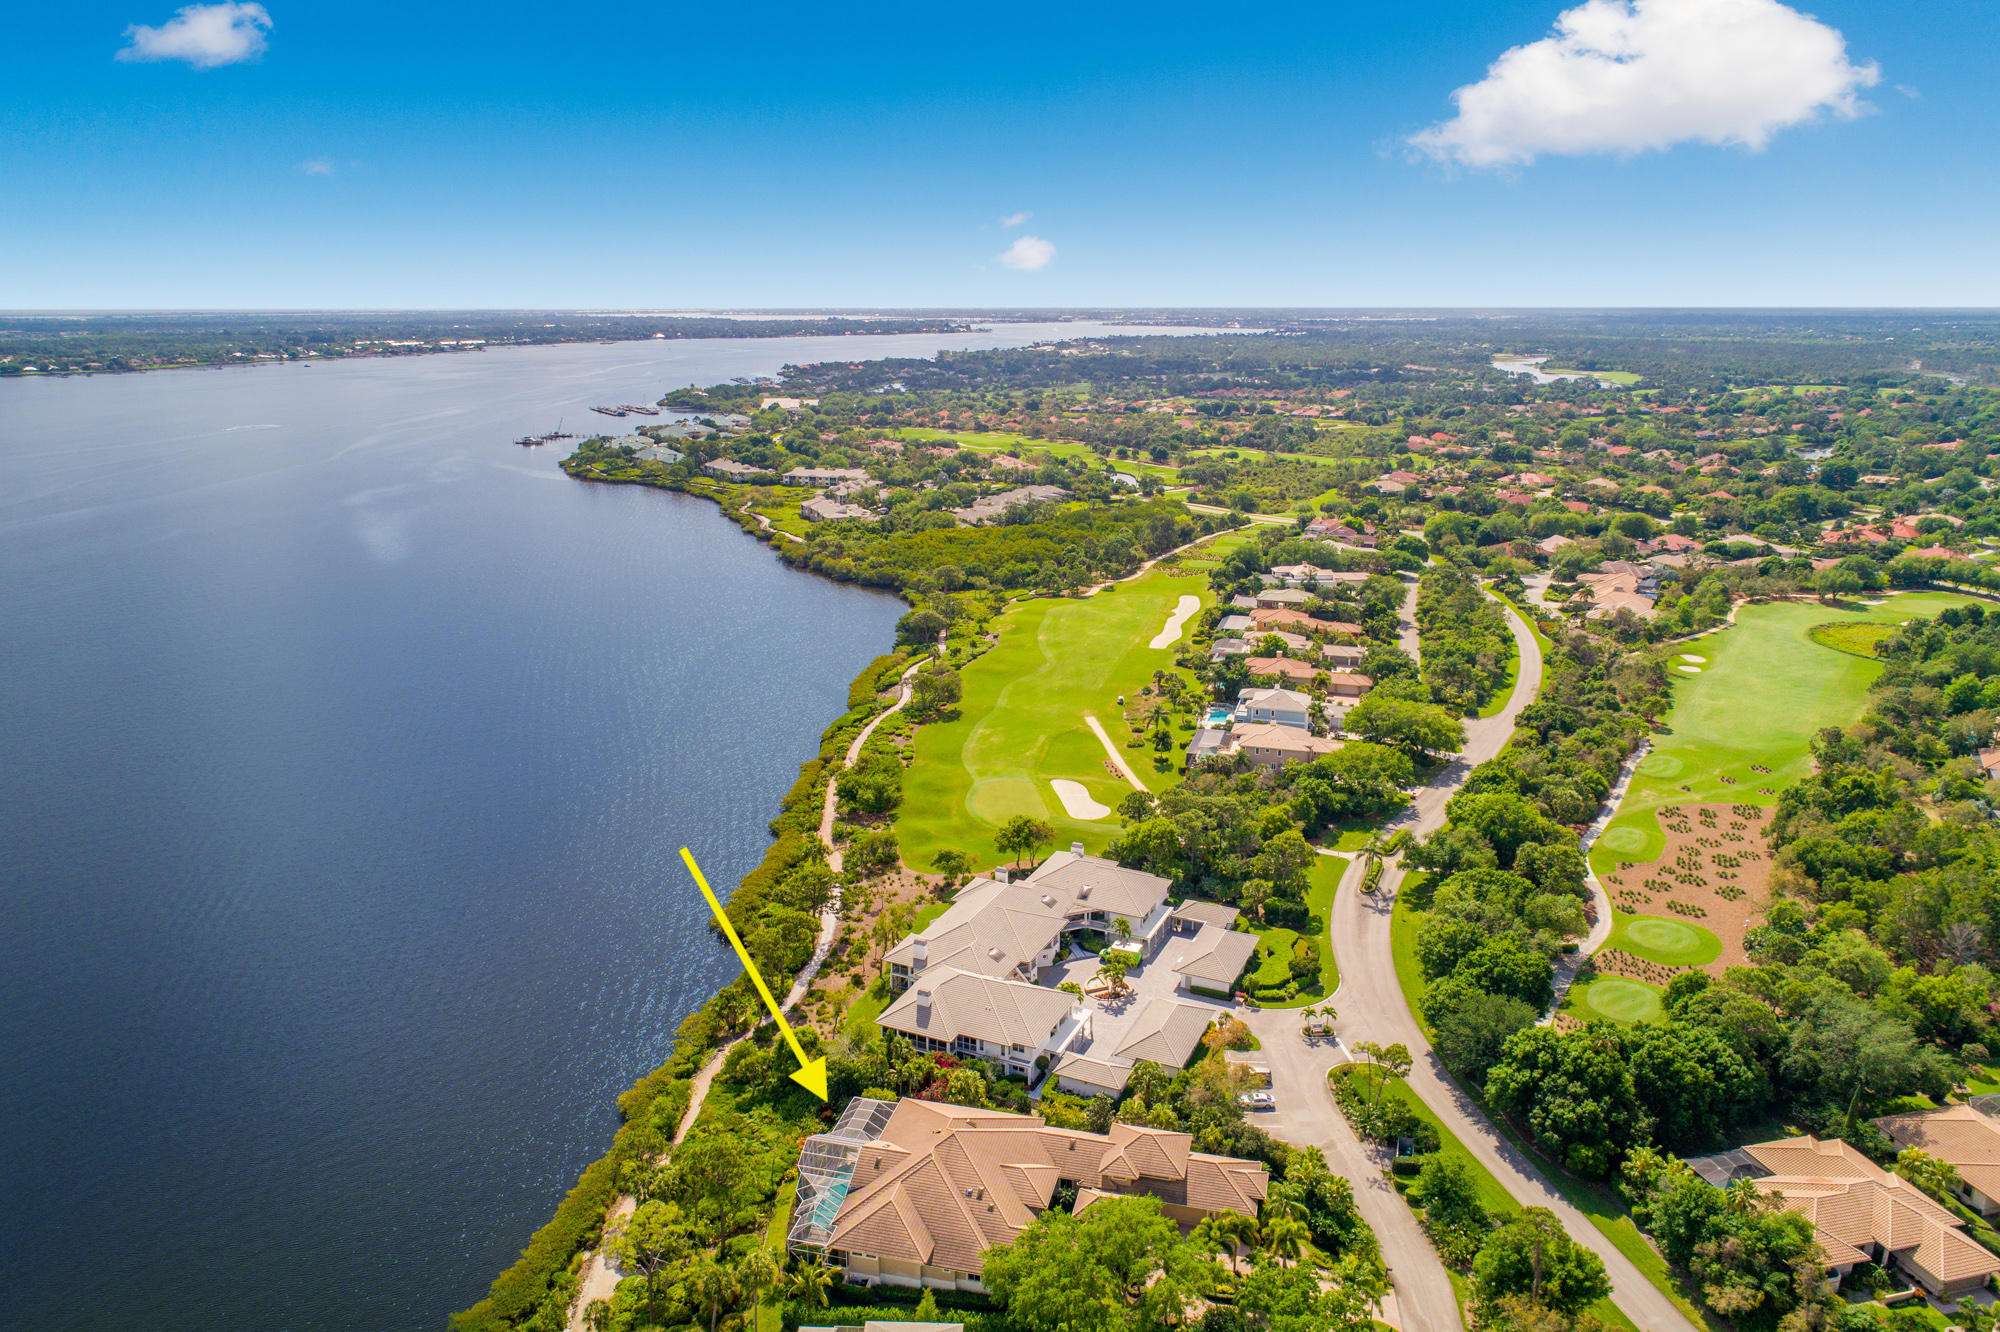 HARBOUR RIDGE PALM CITY FLORIDA